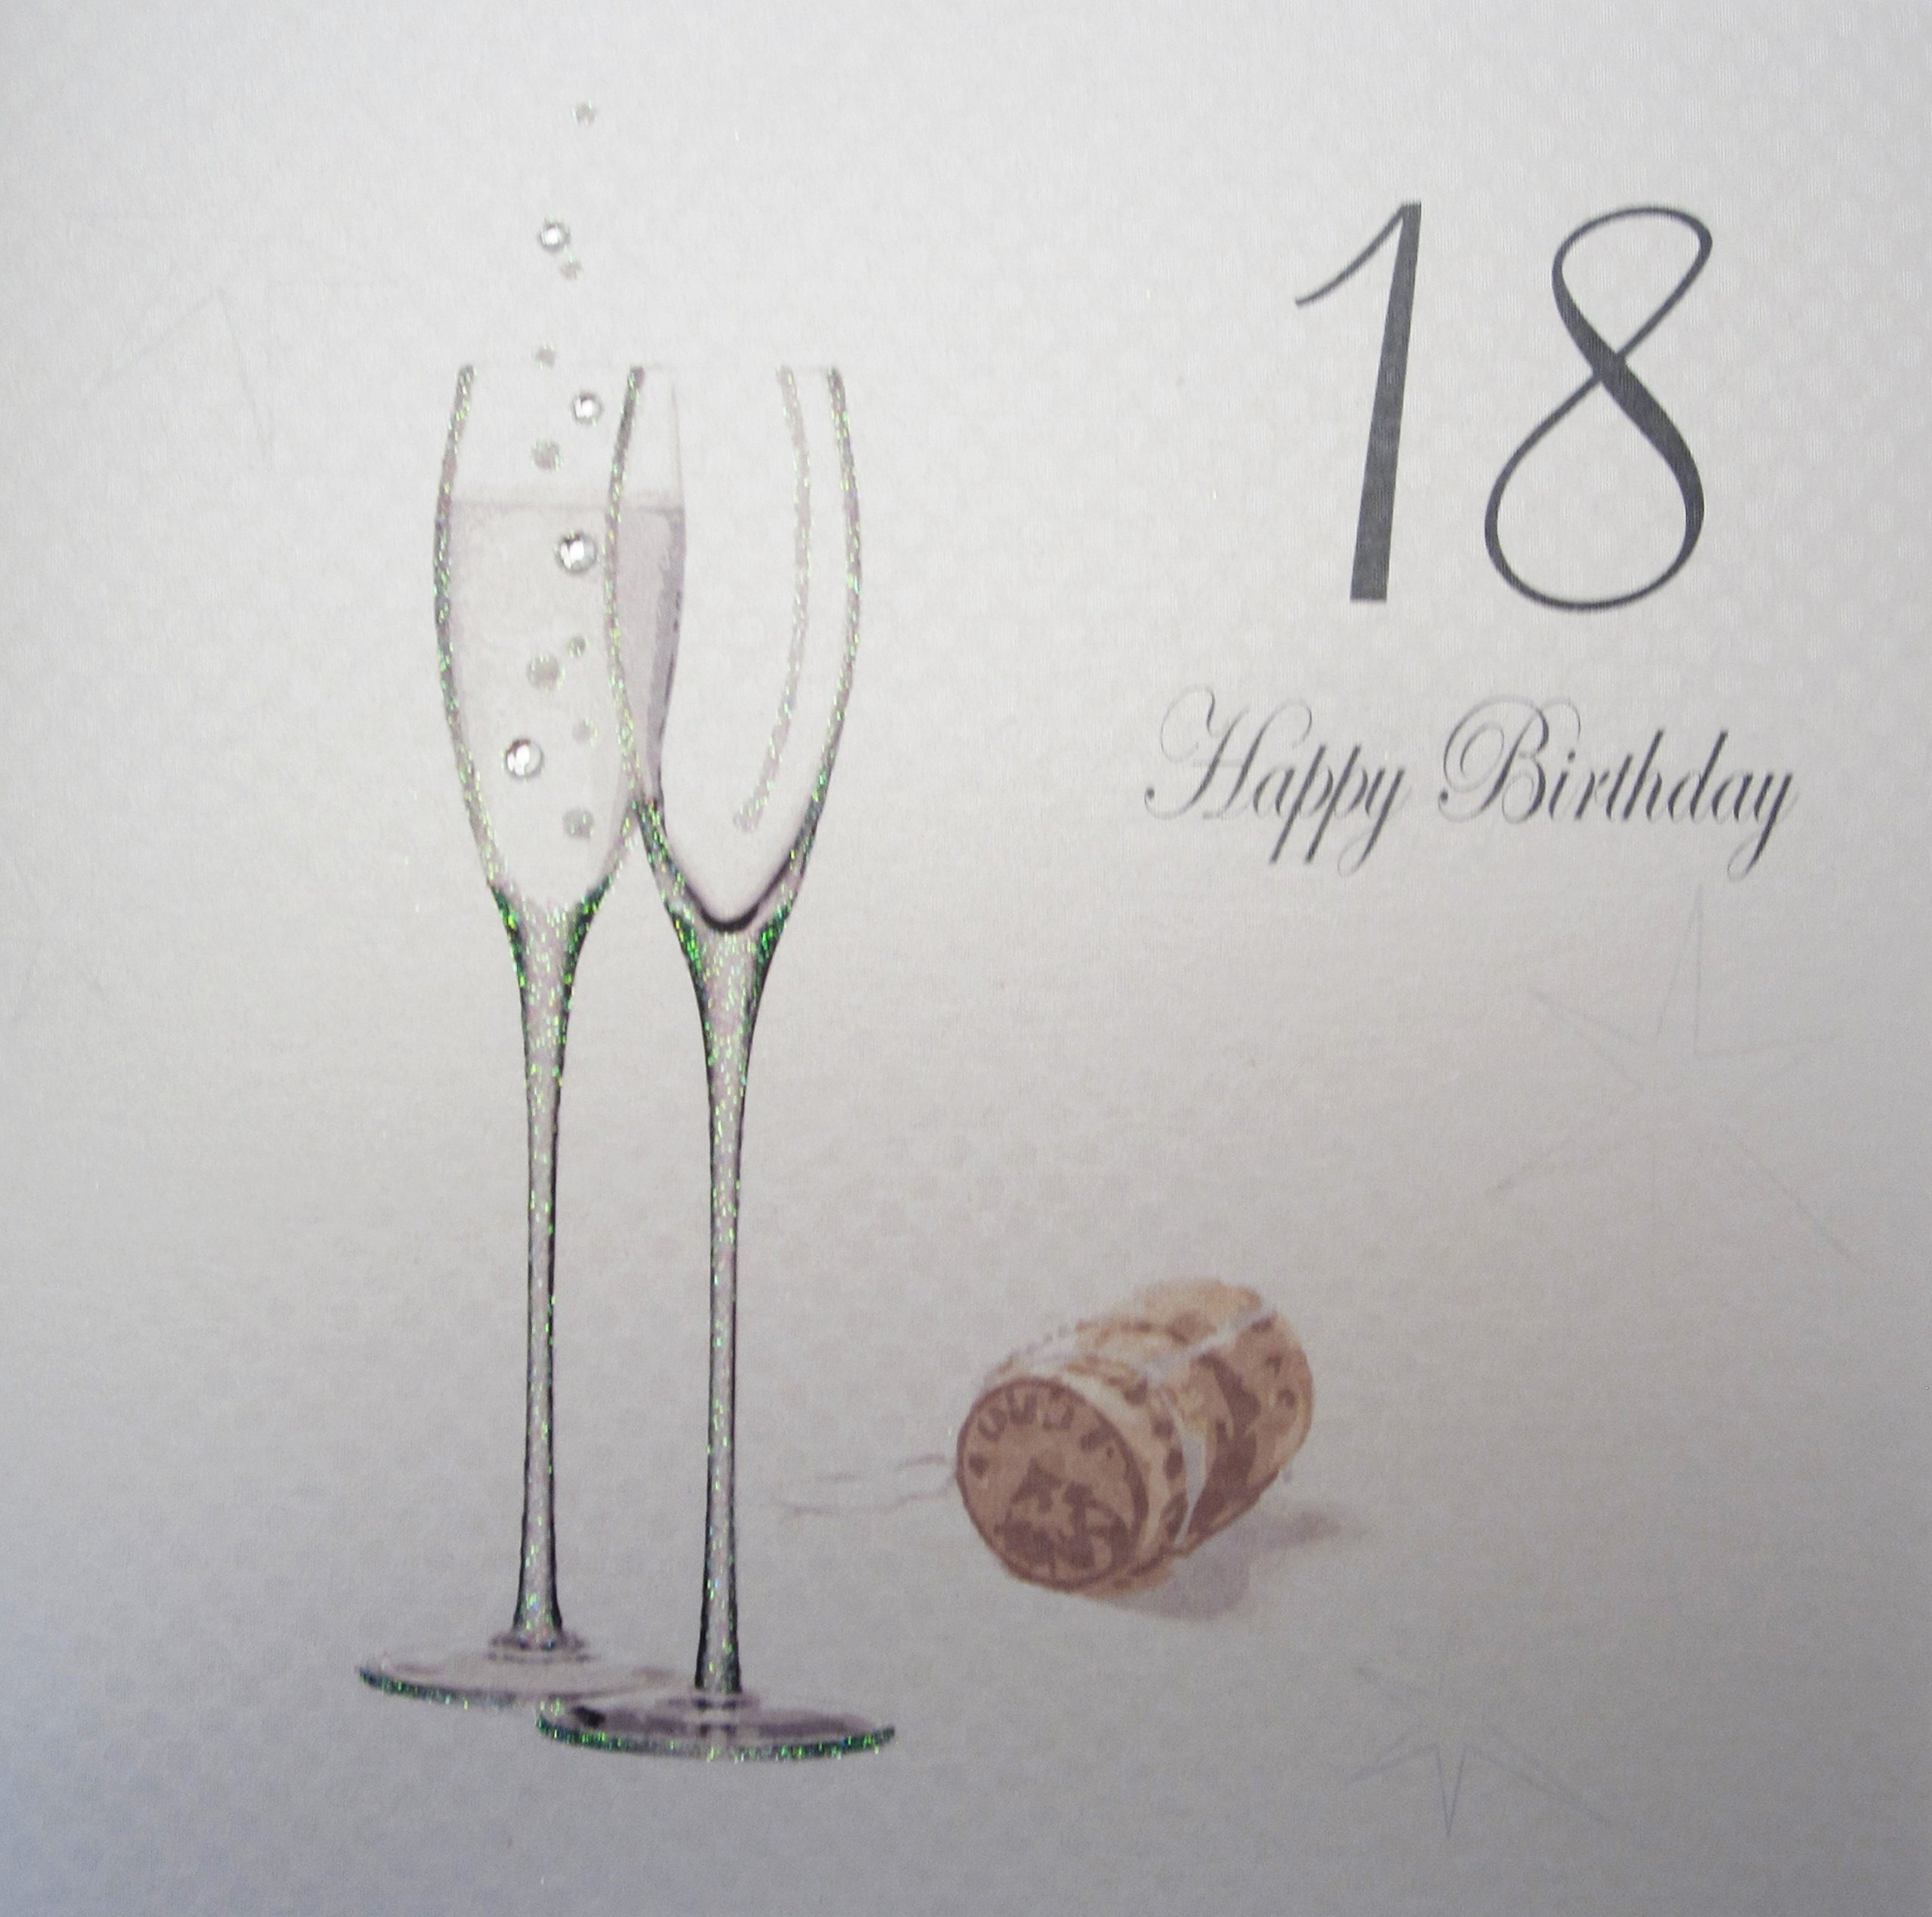 White Cotton Cards Champagne Flutes''18 Happy Birthday'' Handmade 18th Birthday Card